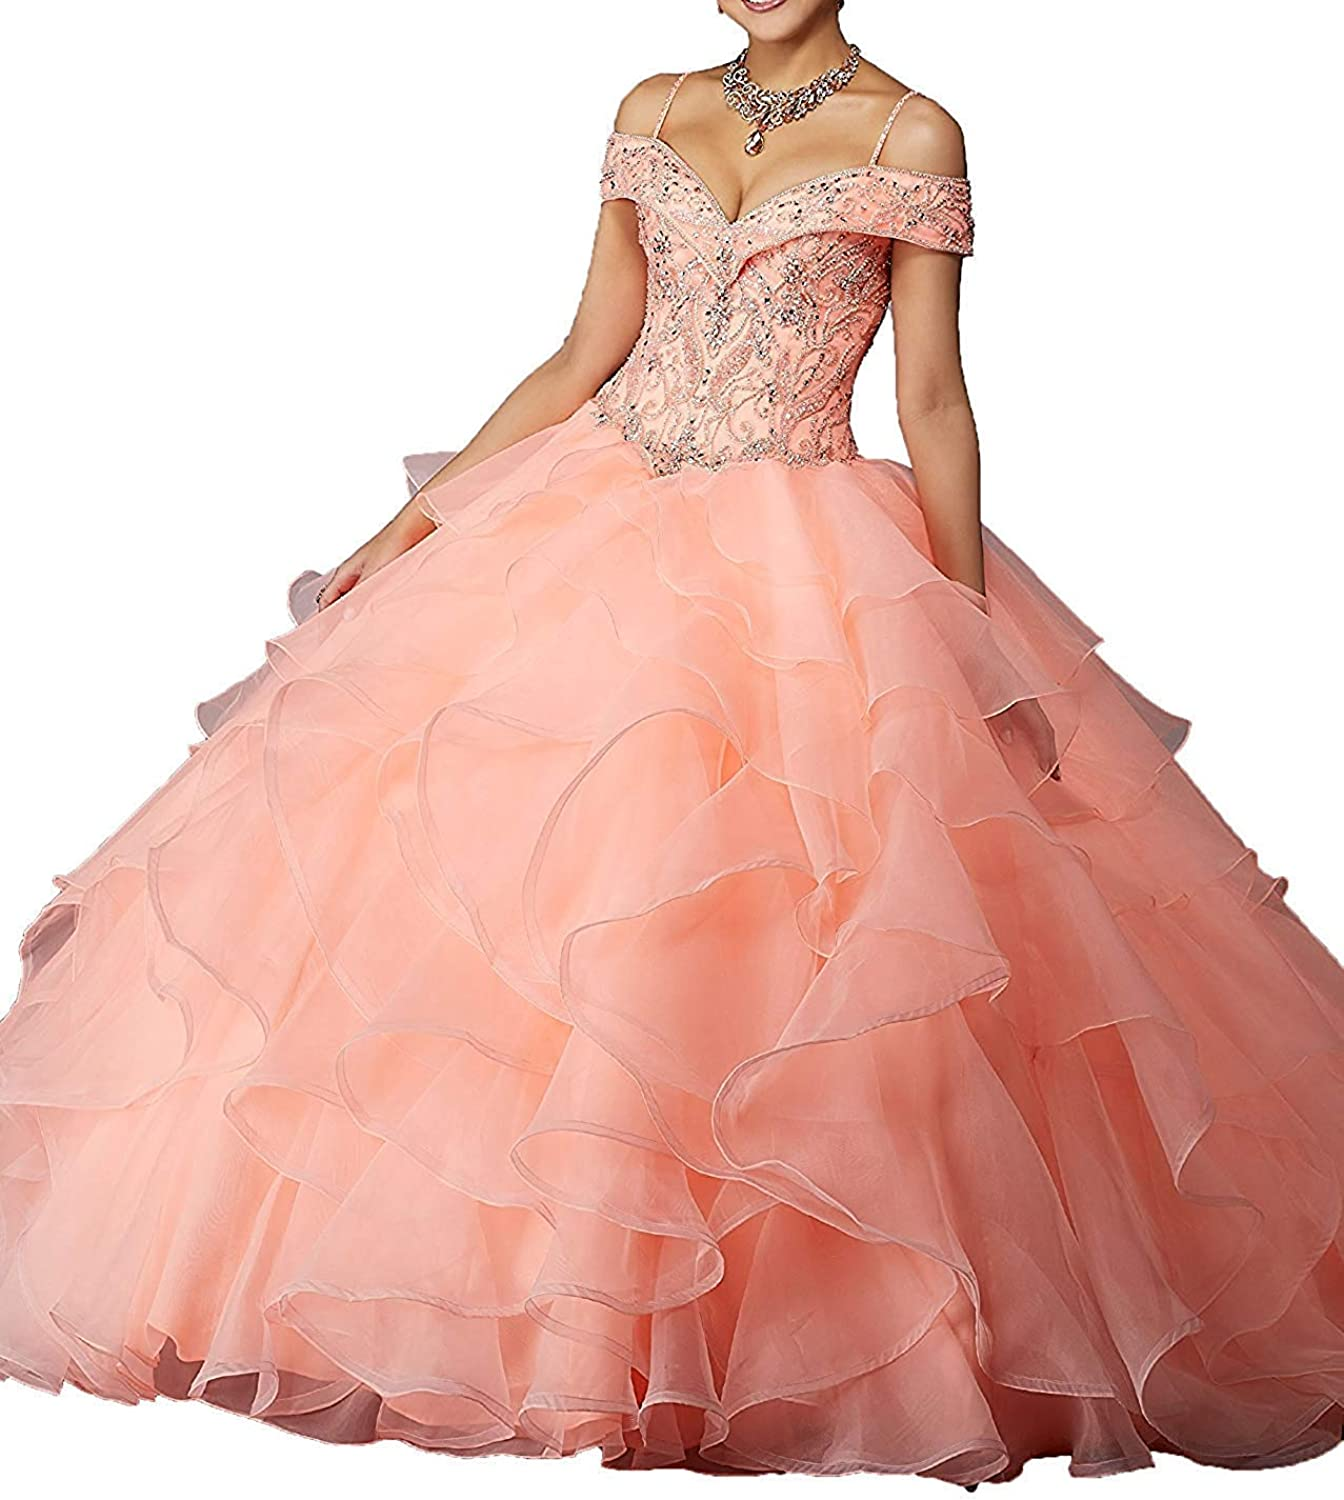 ANFF Juniors Spaghetti Strap Beaded Off Shoulder Prom Party Gowns 2019 Quinceanera Dresses